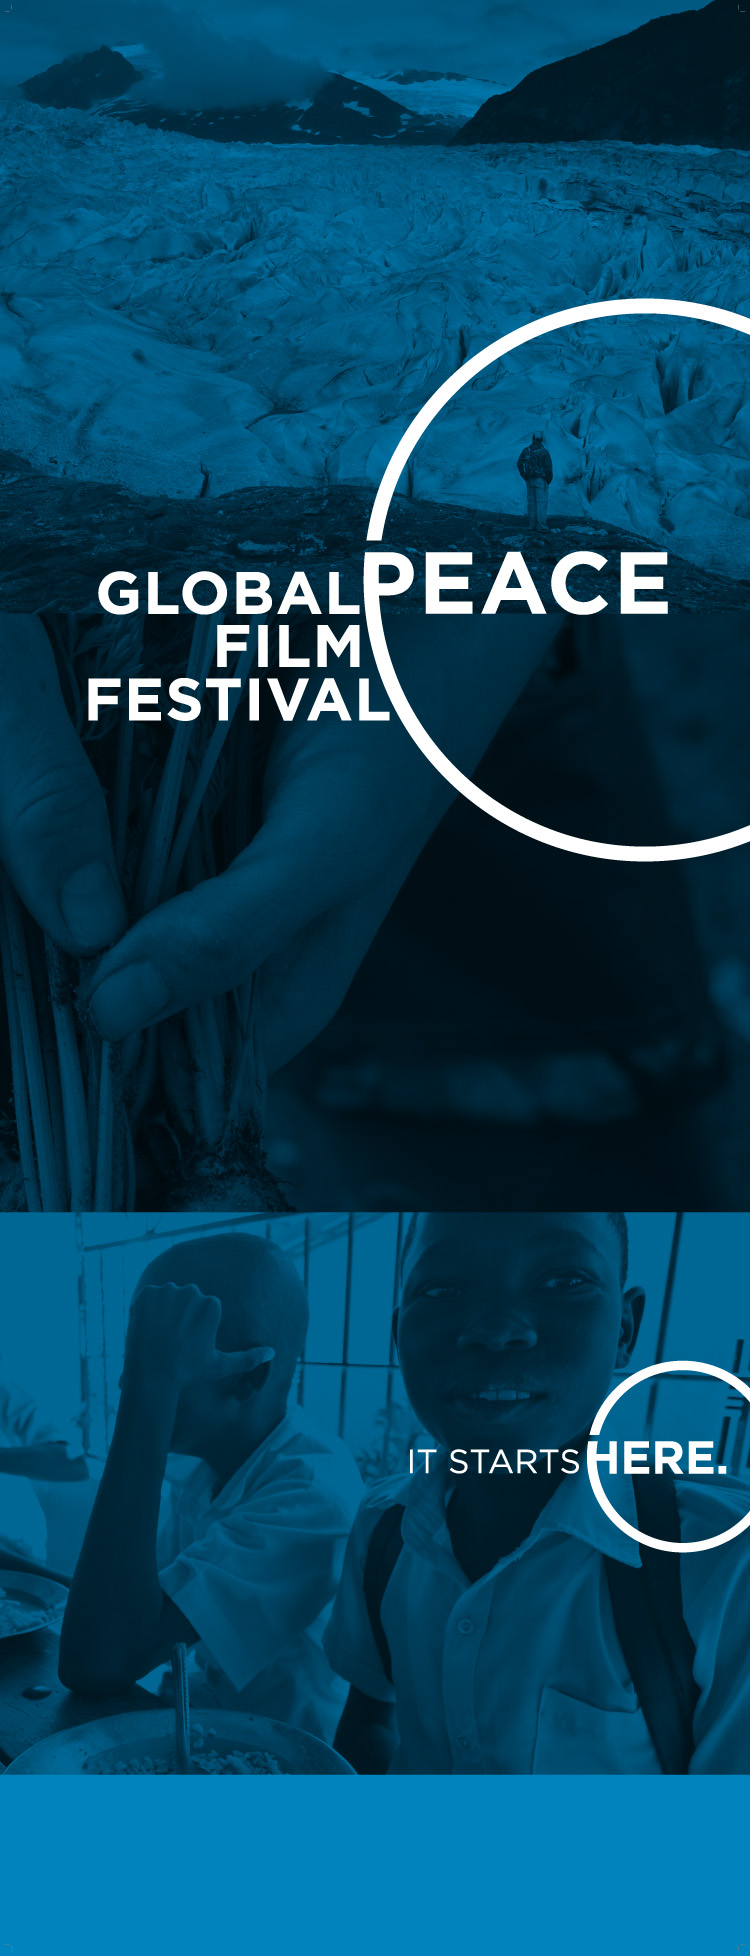 Global Peace Film Festival Rebrand Poster